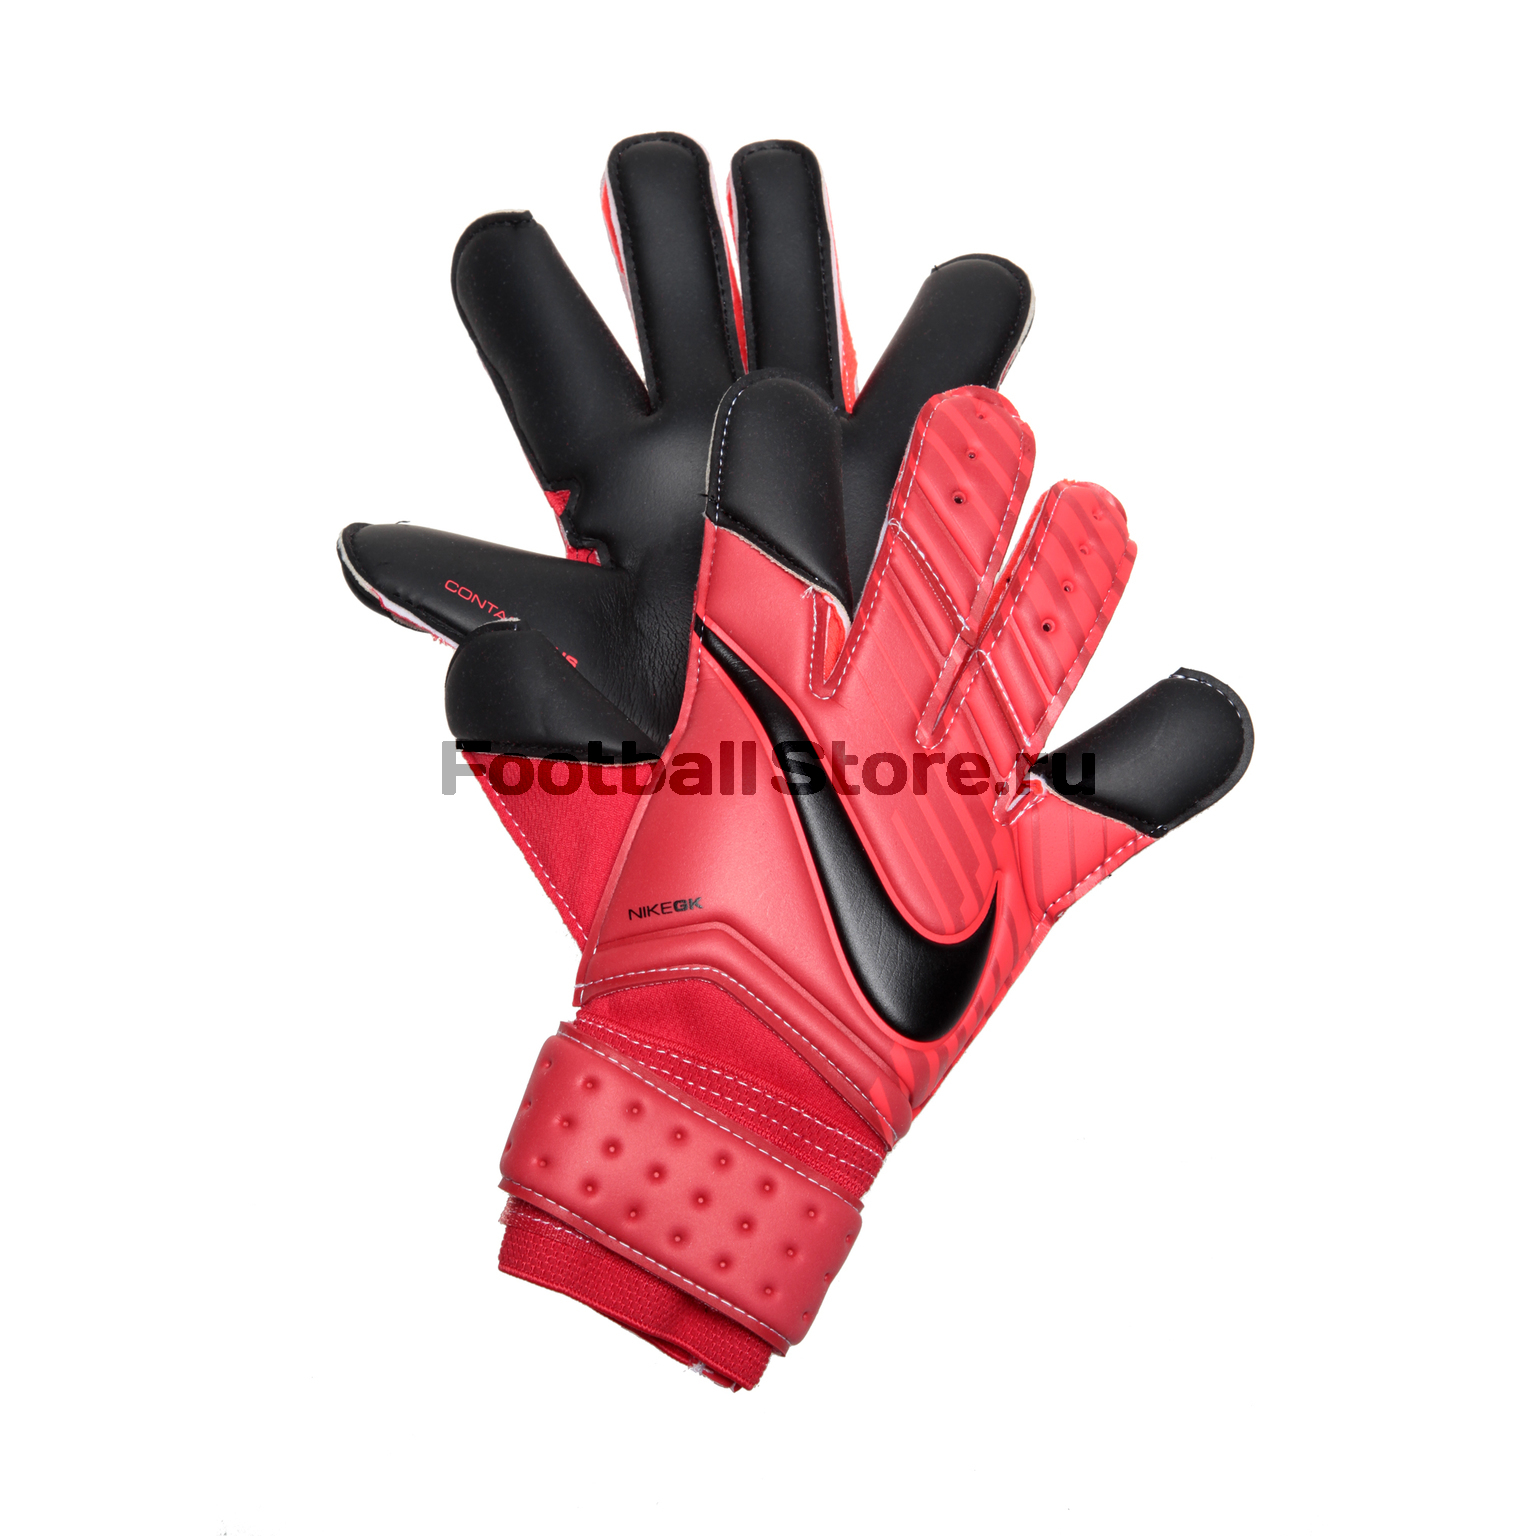 Перчатки Nike Перчатки вратарские Nike GK Vapor GS0347-657 спортинвентарь nike чехол для iphone 6 на руку nike vapor flash arm band 2 0 n rn 50 078 os